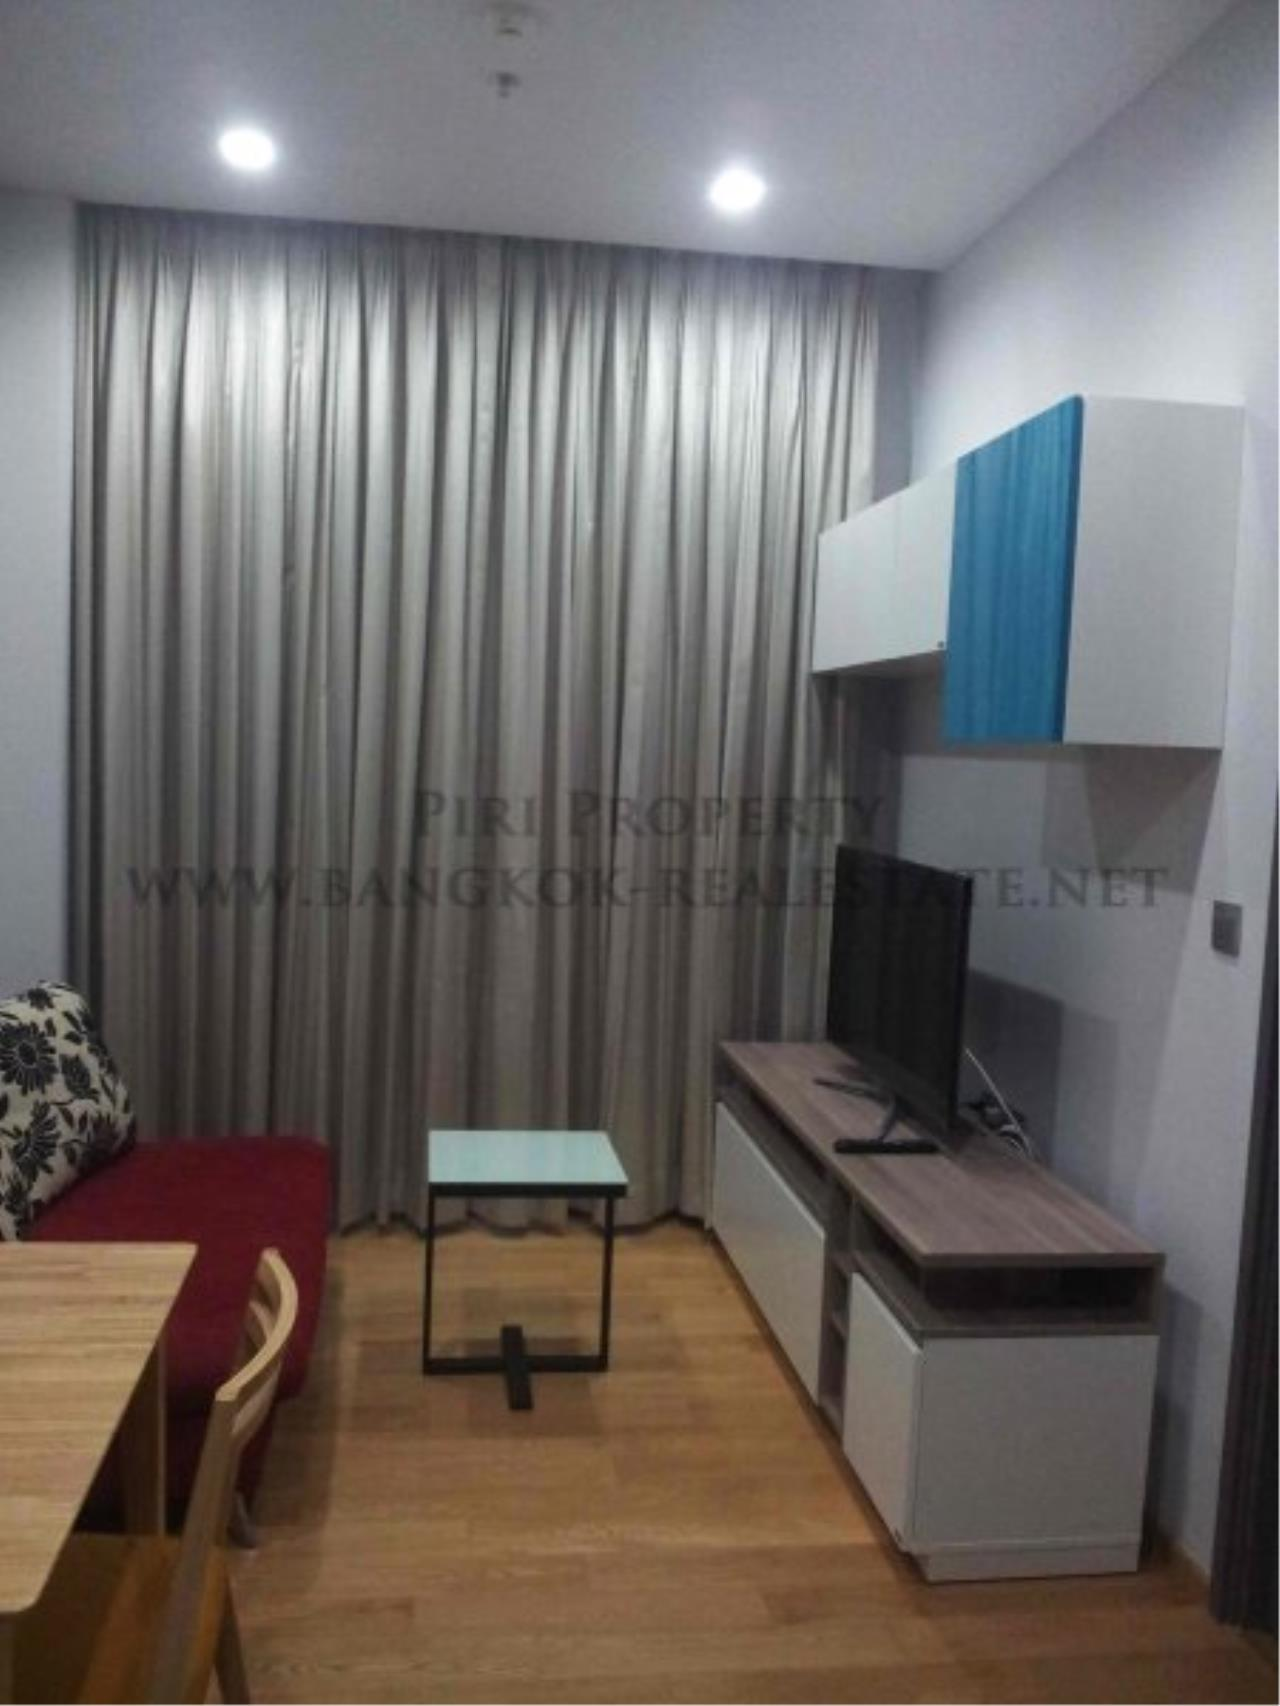 Piri Property Agency's Cozy 1 Bedroom Condo for Rent in Thonglor - Keyne by Sansiri 1